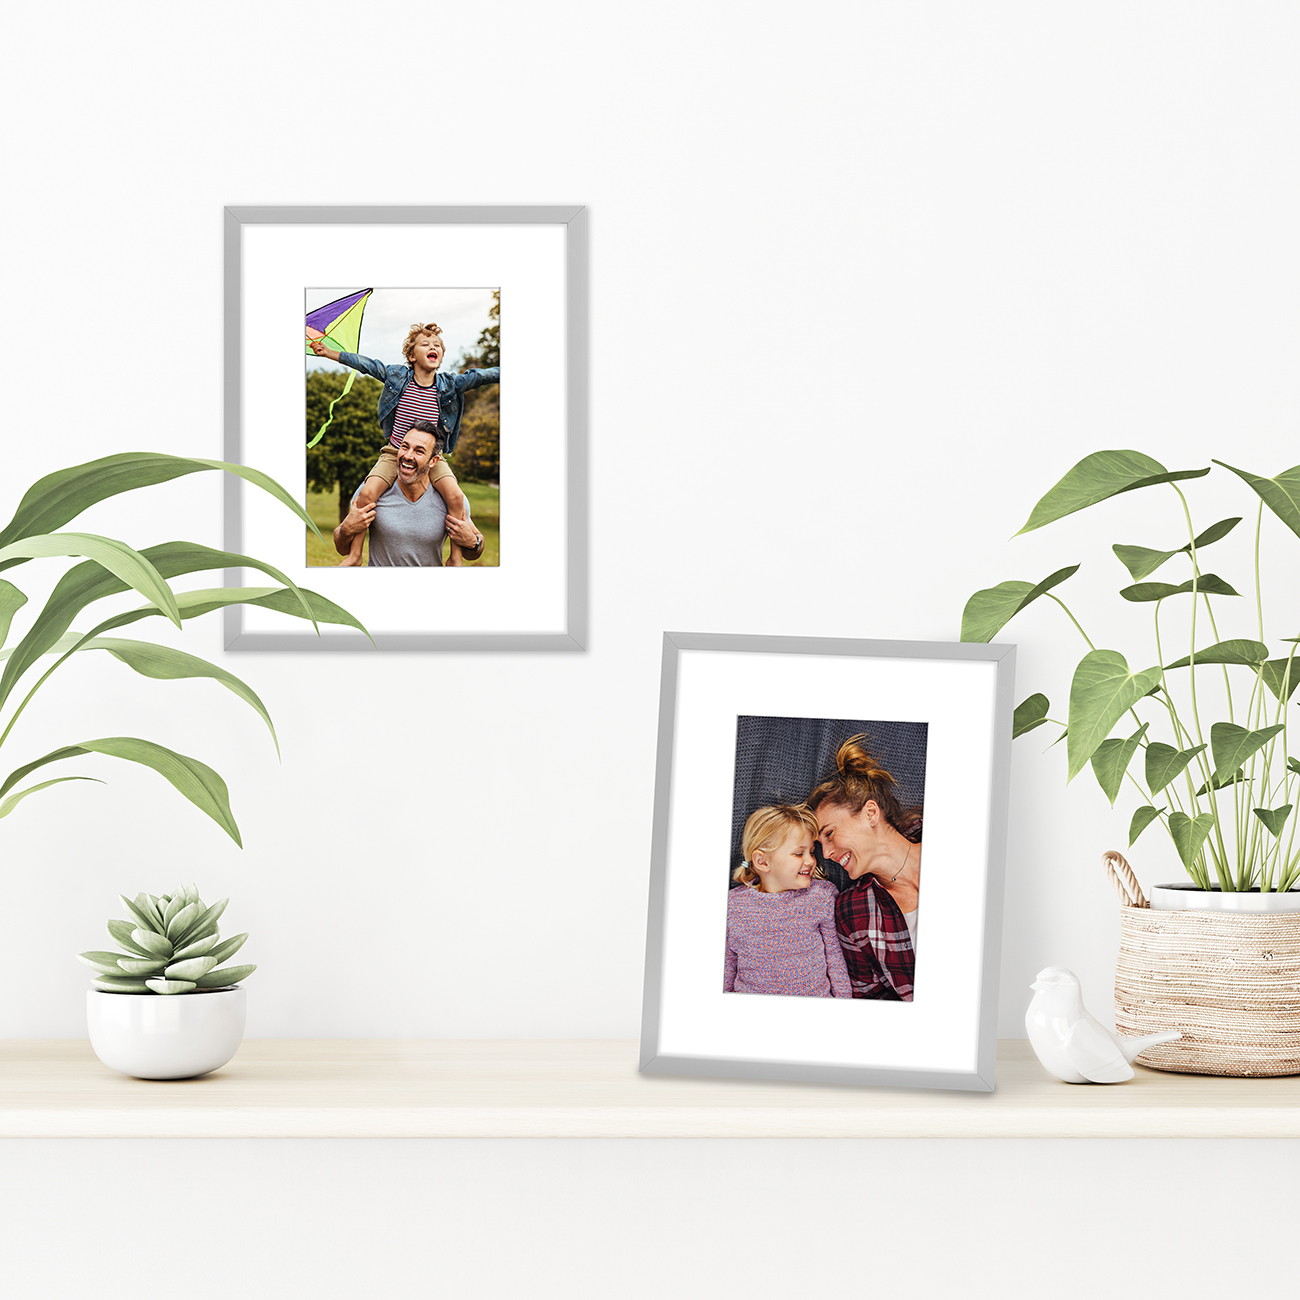 miniature 72 - Americanflat Thin Picture Frame 5x7 8x10 11x14 8.5x11 Wall Tabletop Pick Color